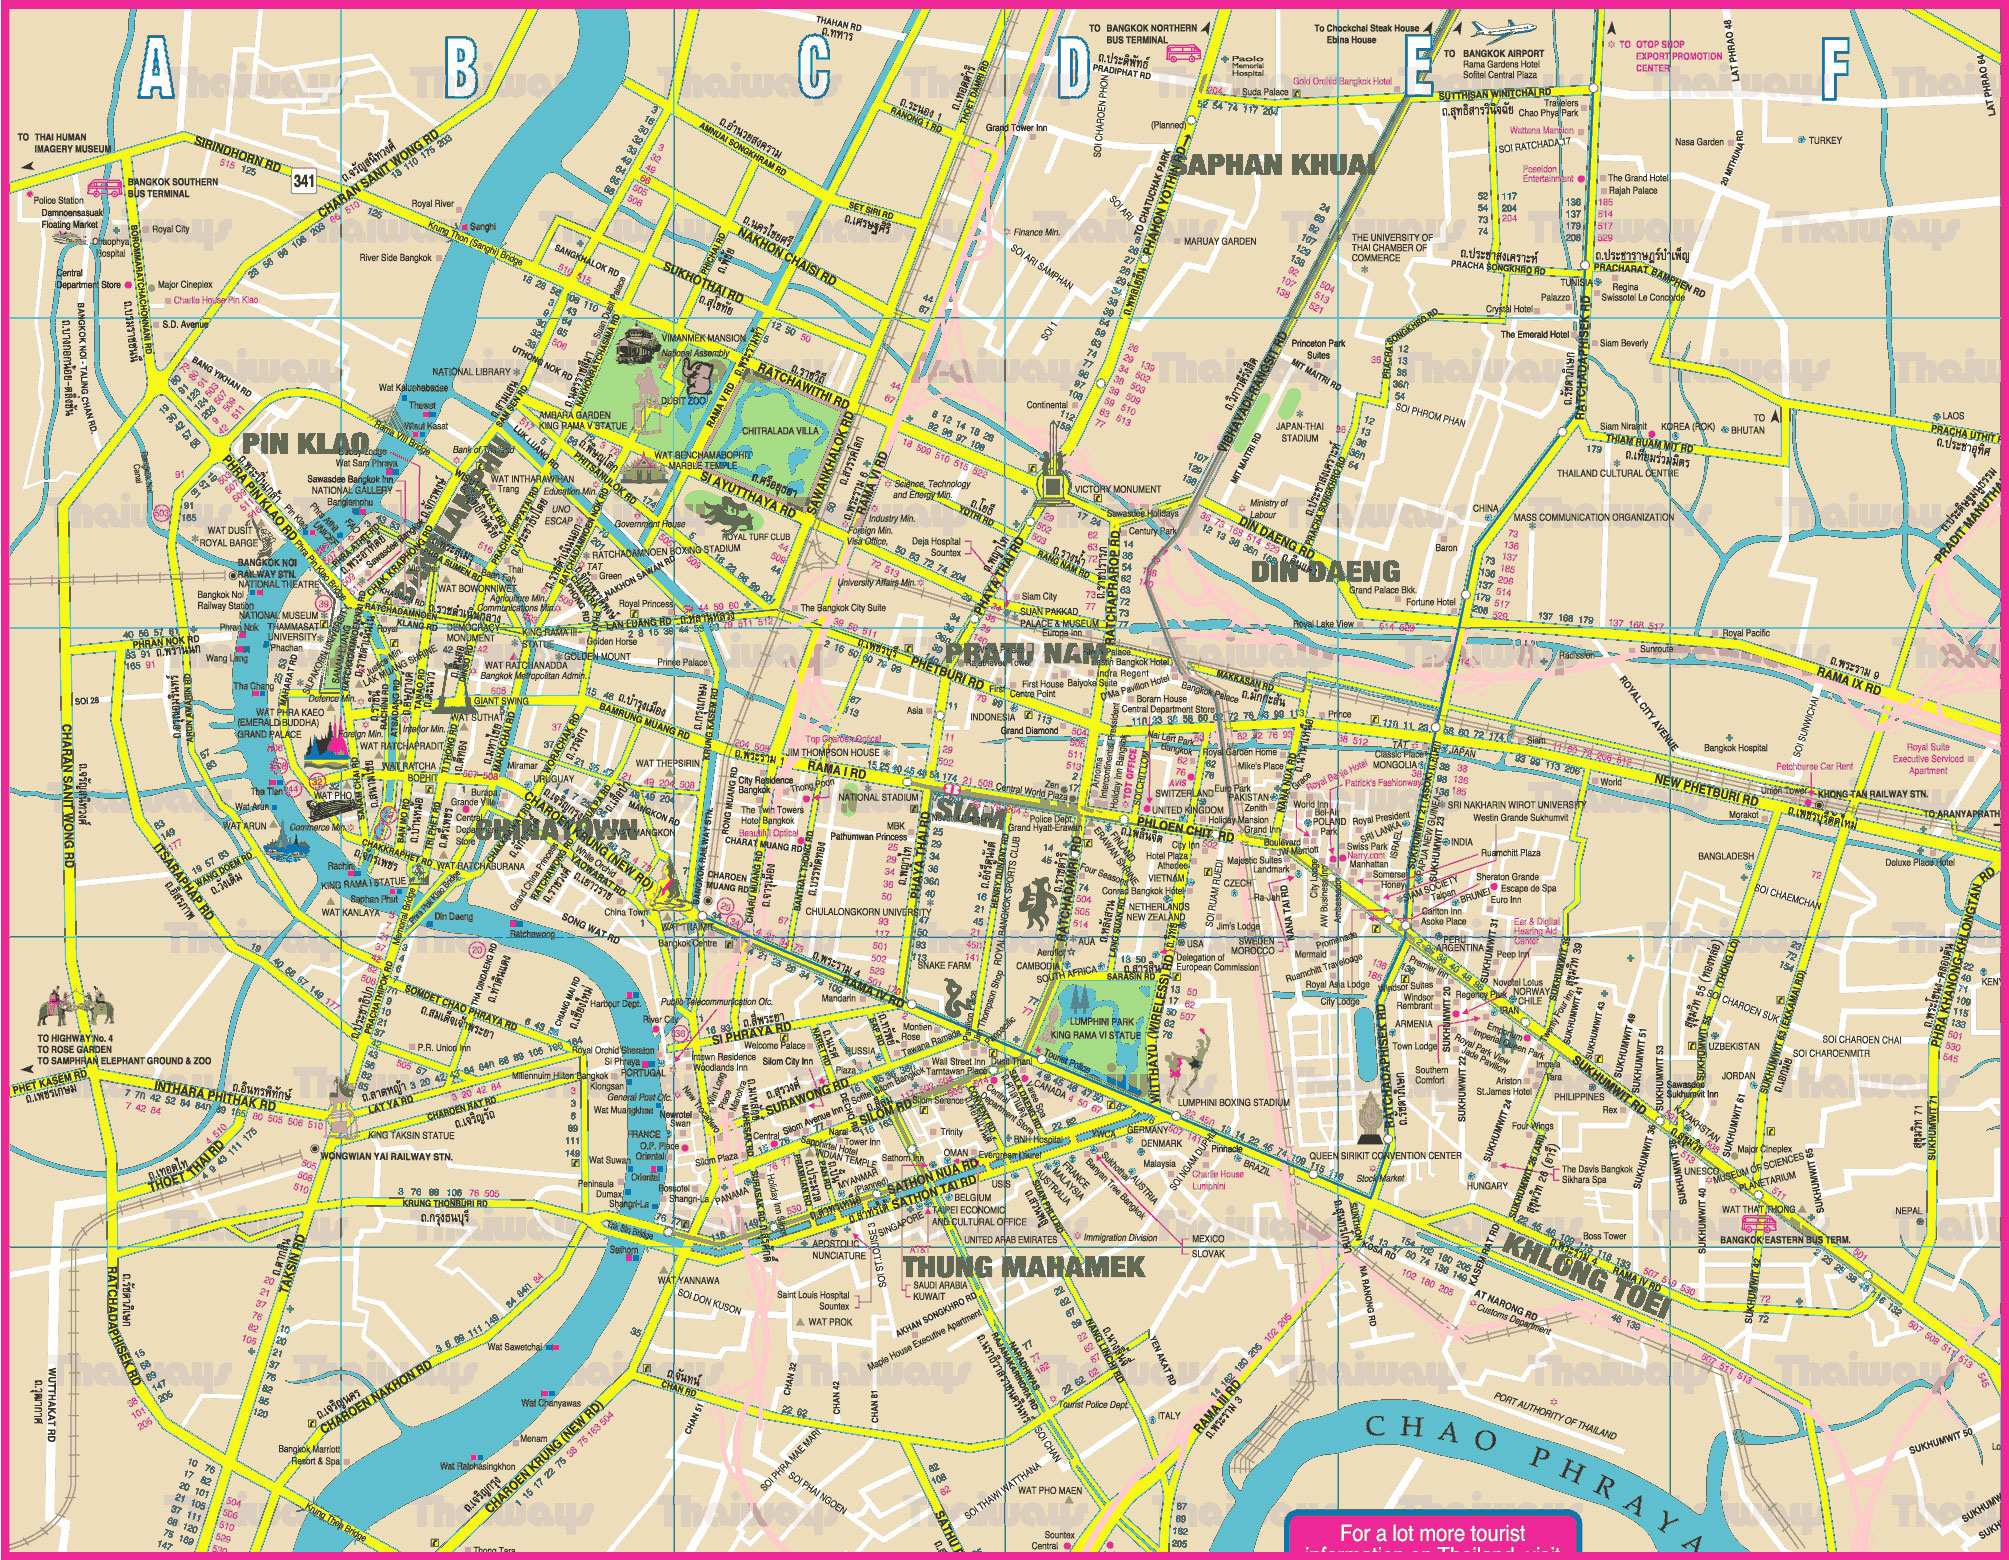 bangkok karte Large Bangkok Maps for Free Download and Print | High Resolution